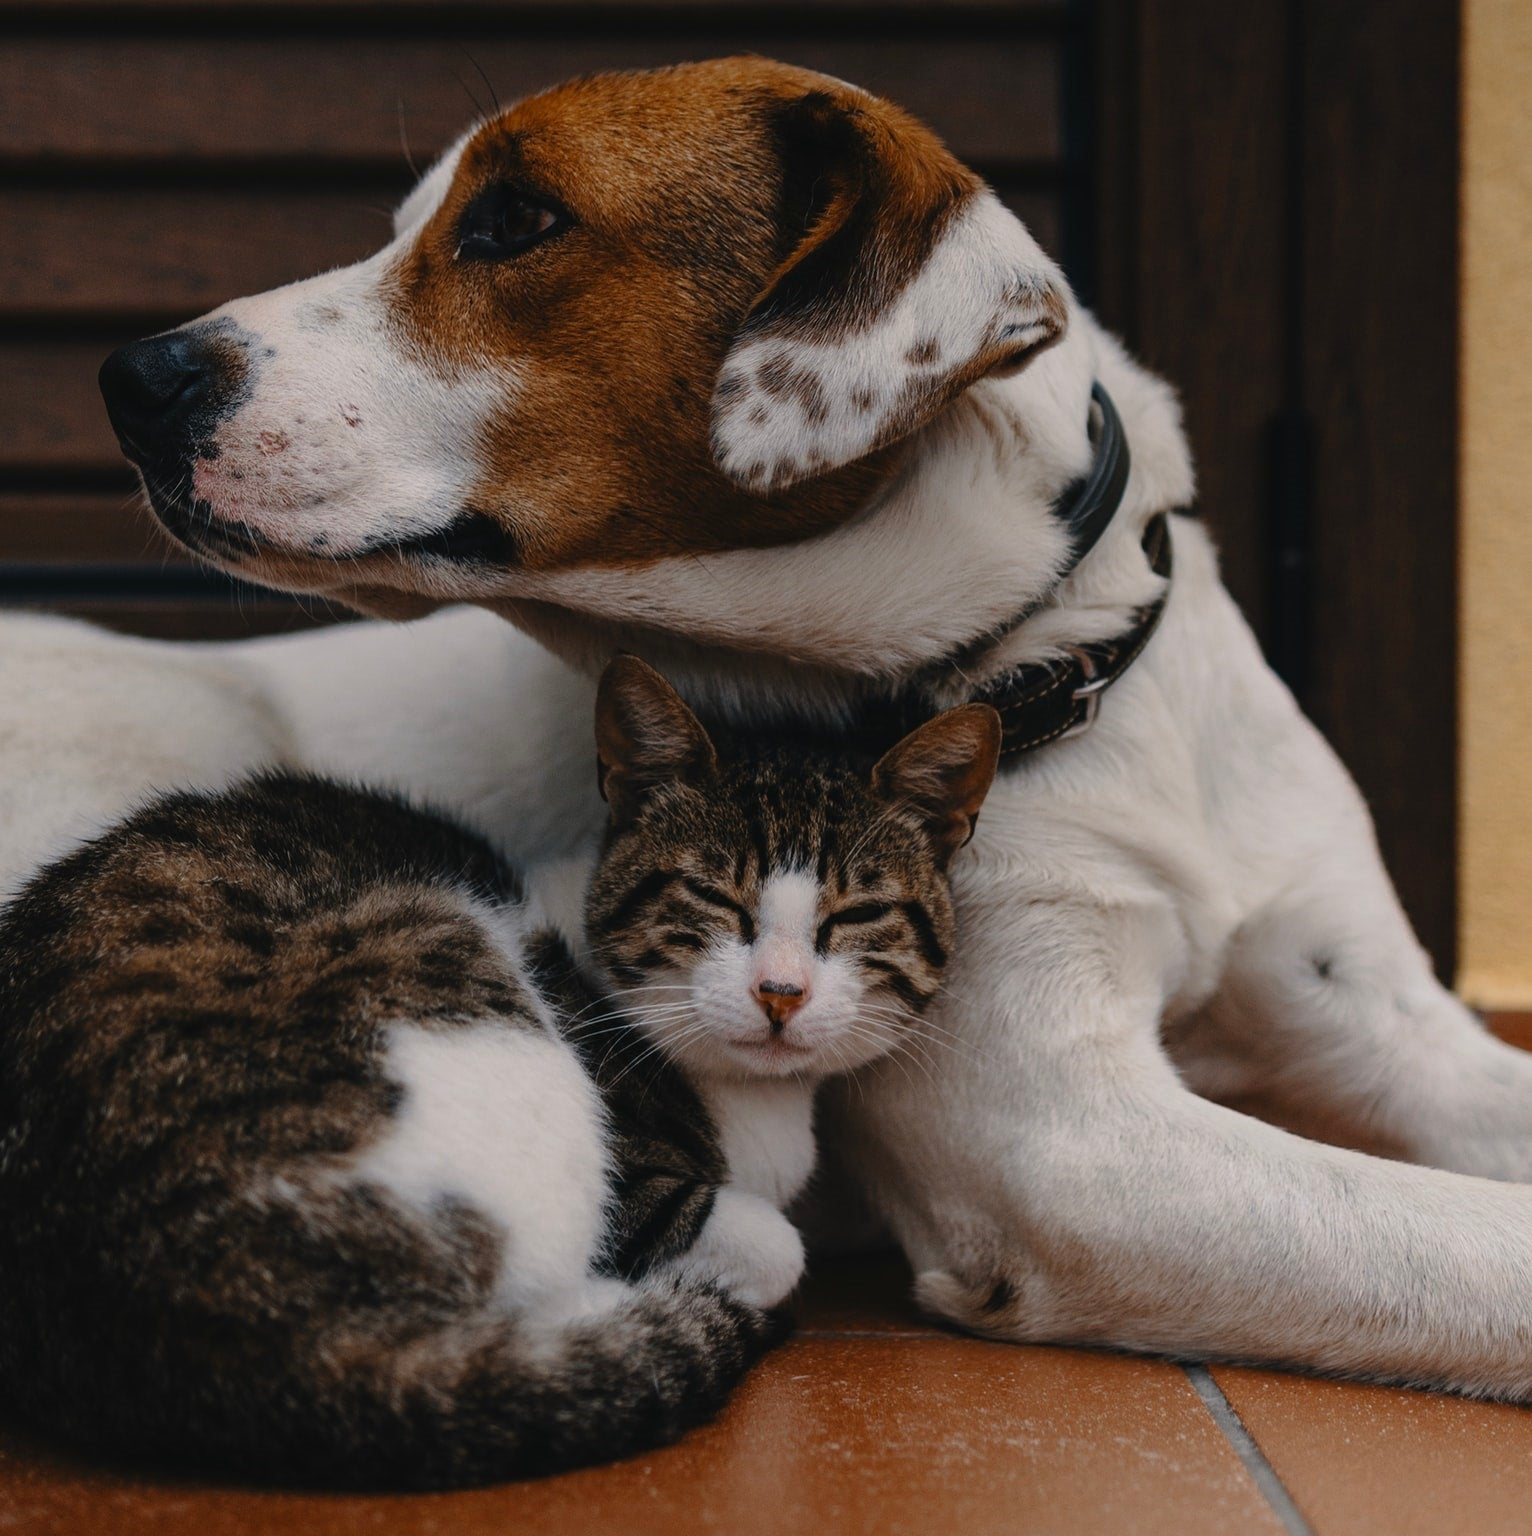 Cute dog and a sleeping cat